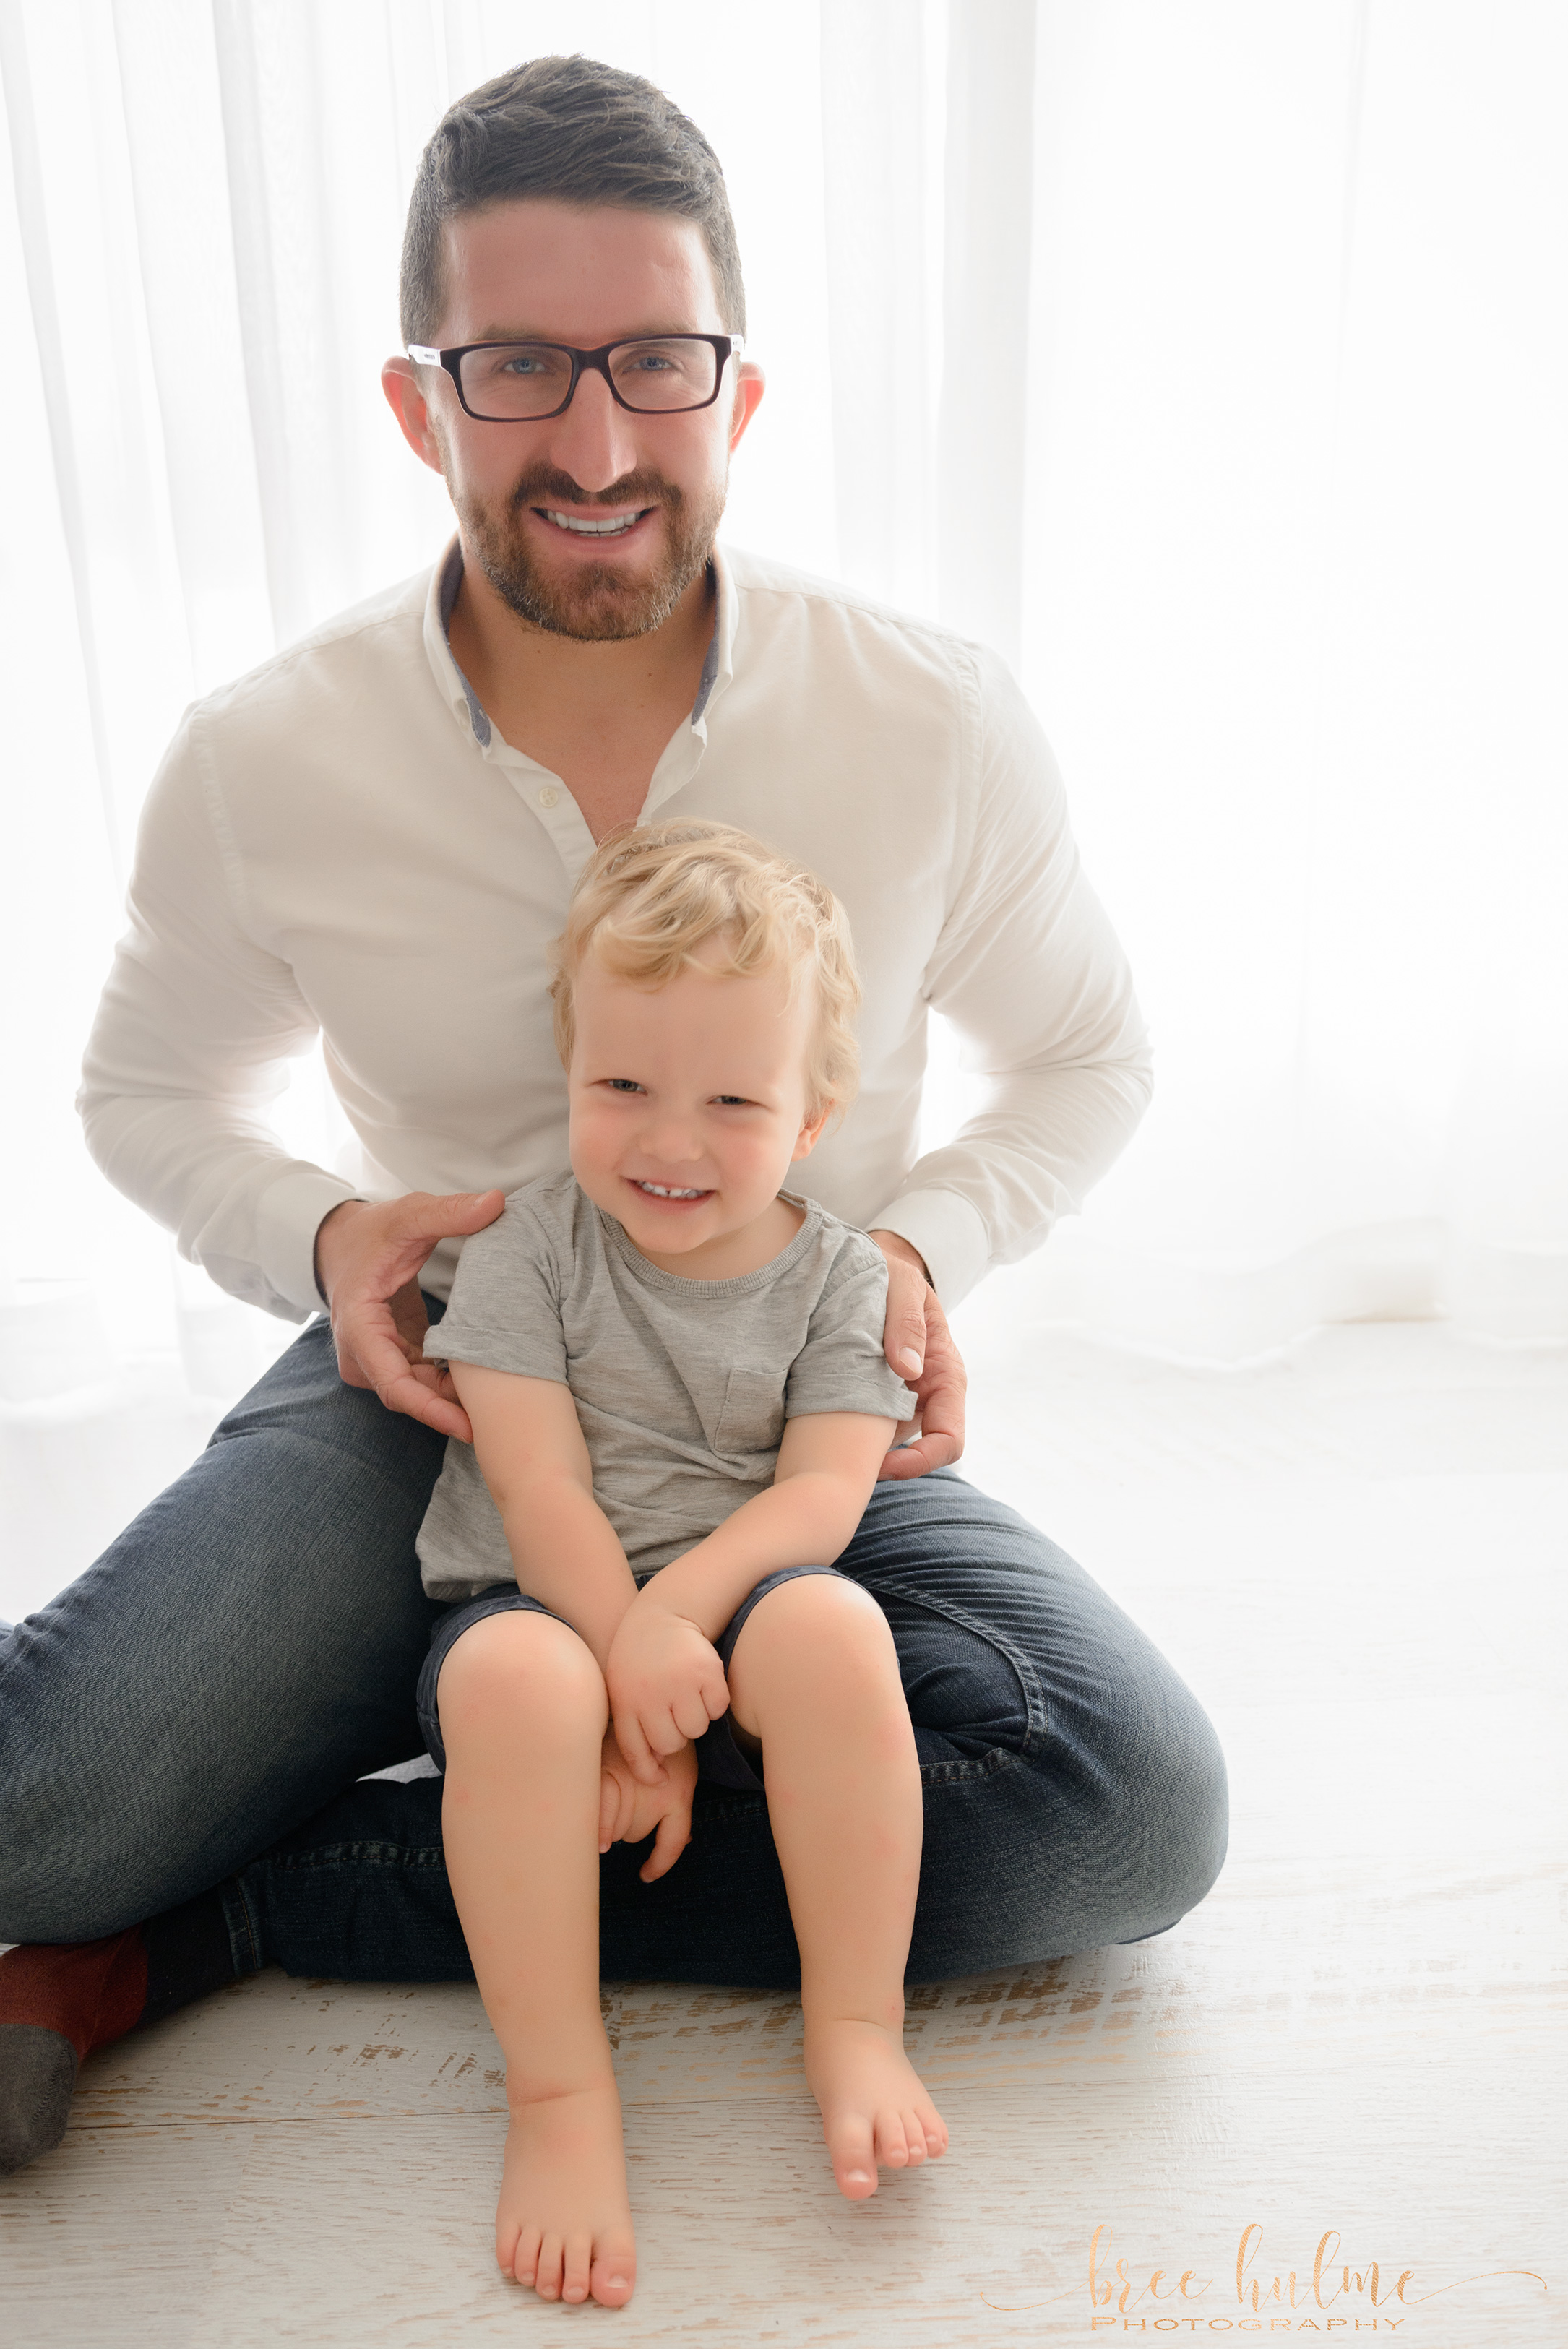 Bree Hulme Photography Sydney's best newborn and family photographer Father and child happy father's Day